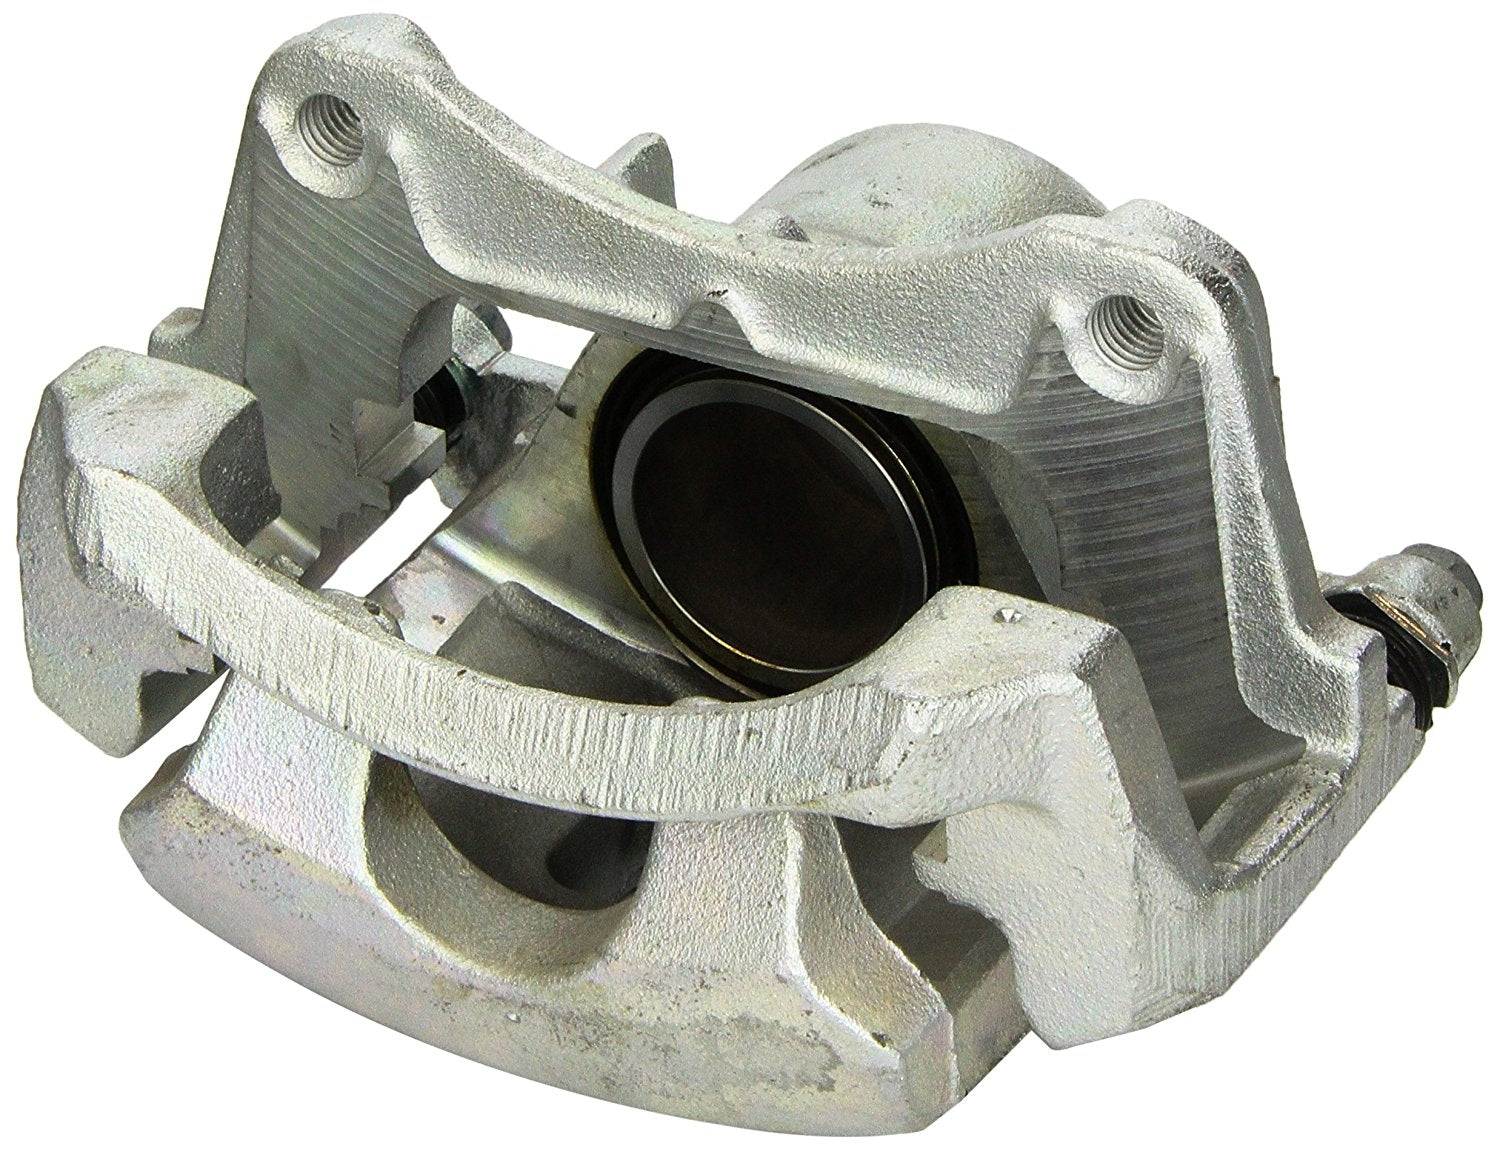 Raybestos FRC11807 Professional Grade Remanufactured, Semi-Loaded Disc Brake Caliper